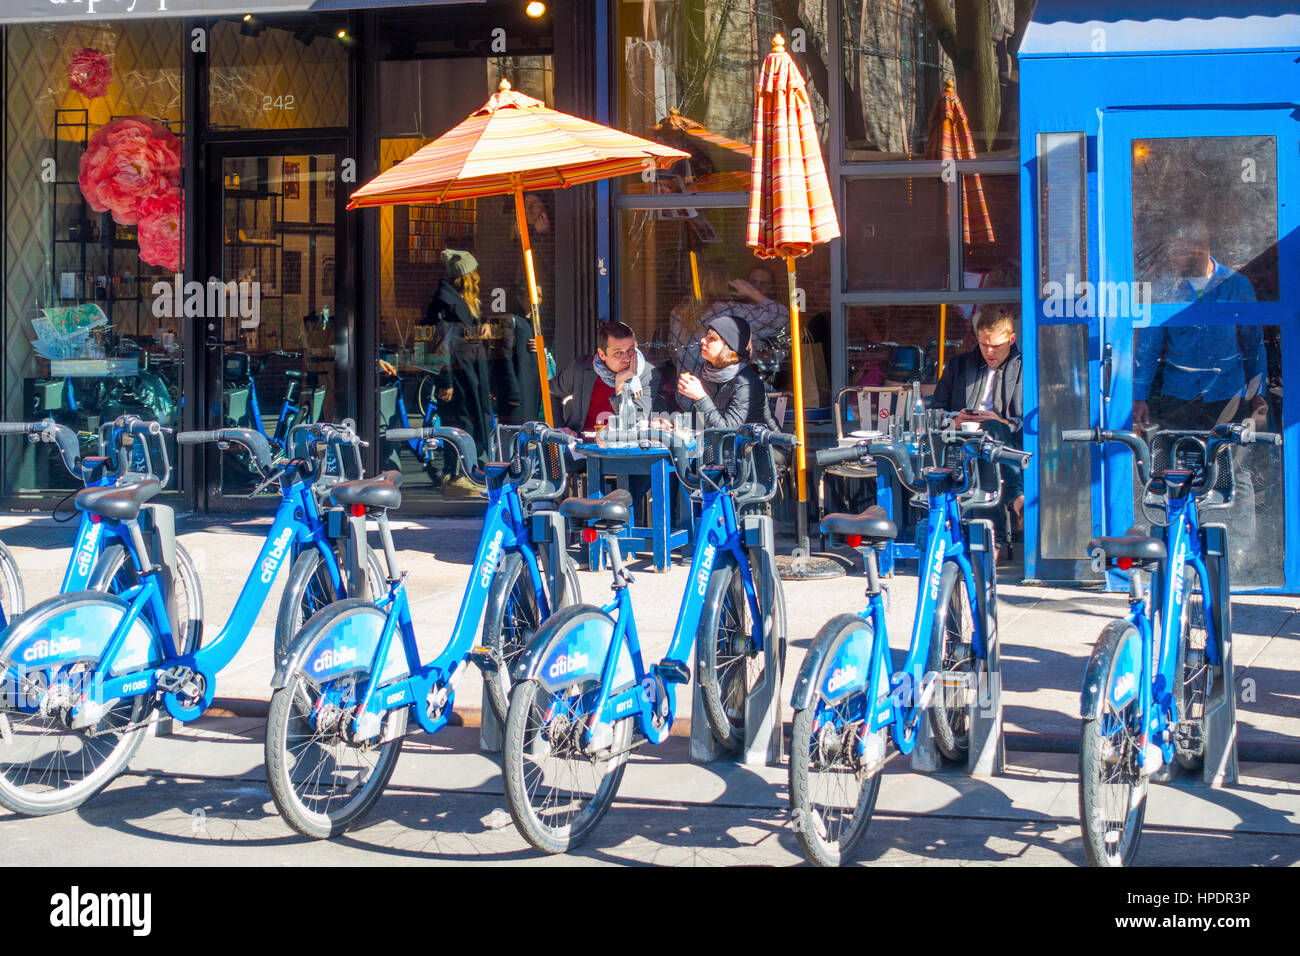 Alfresco diners outside a cafe in winter and a line of Citibike rental bicycles - Stock Image